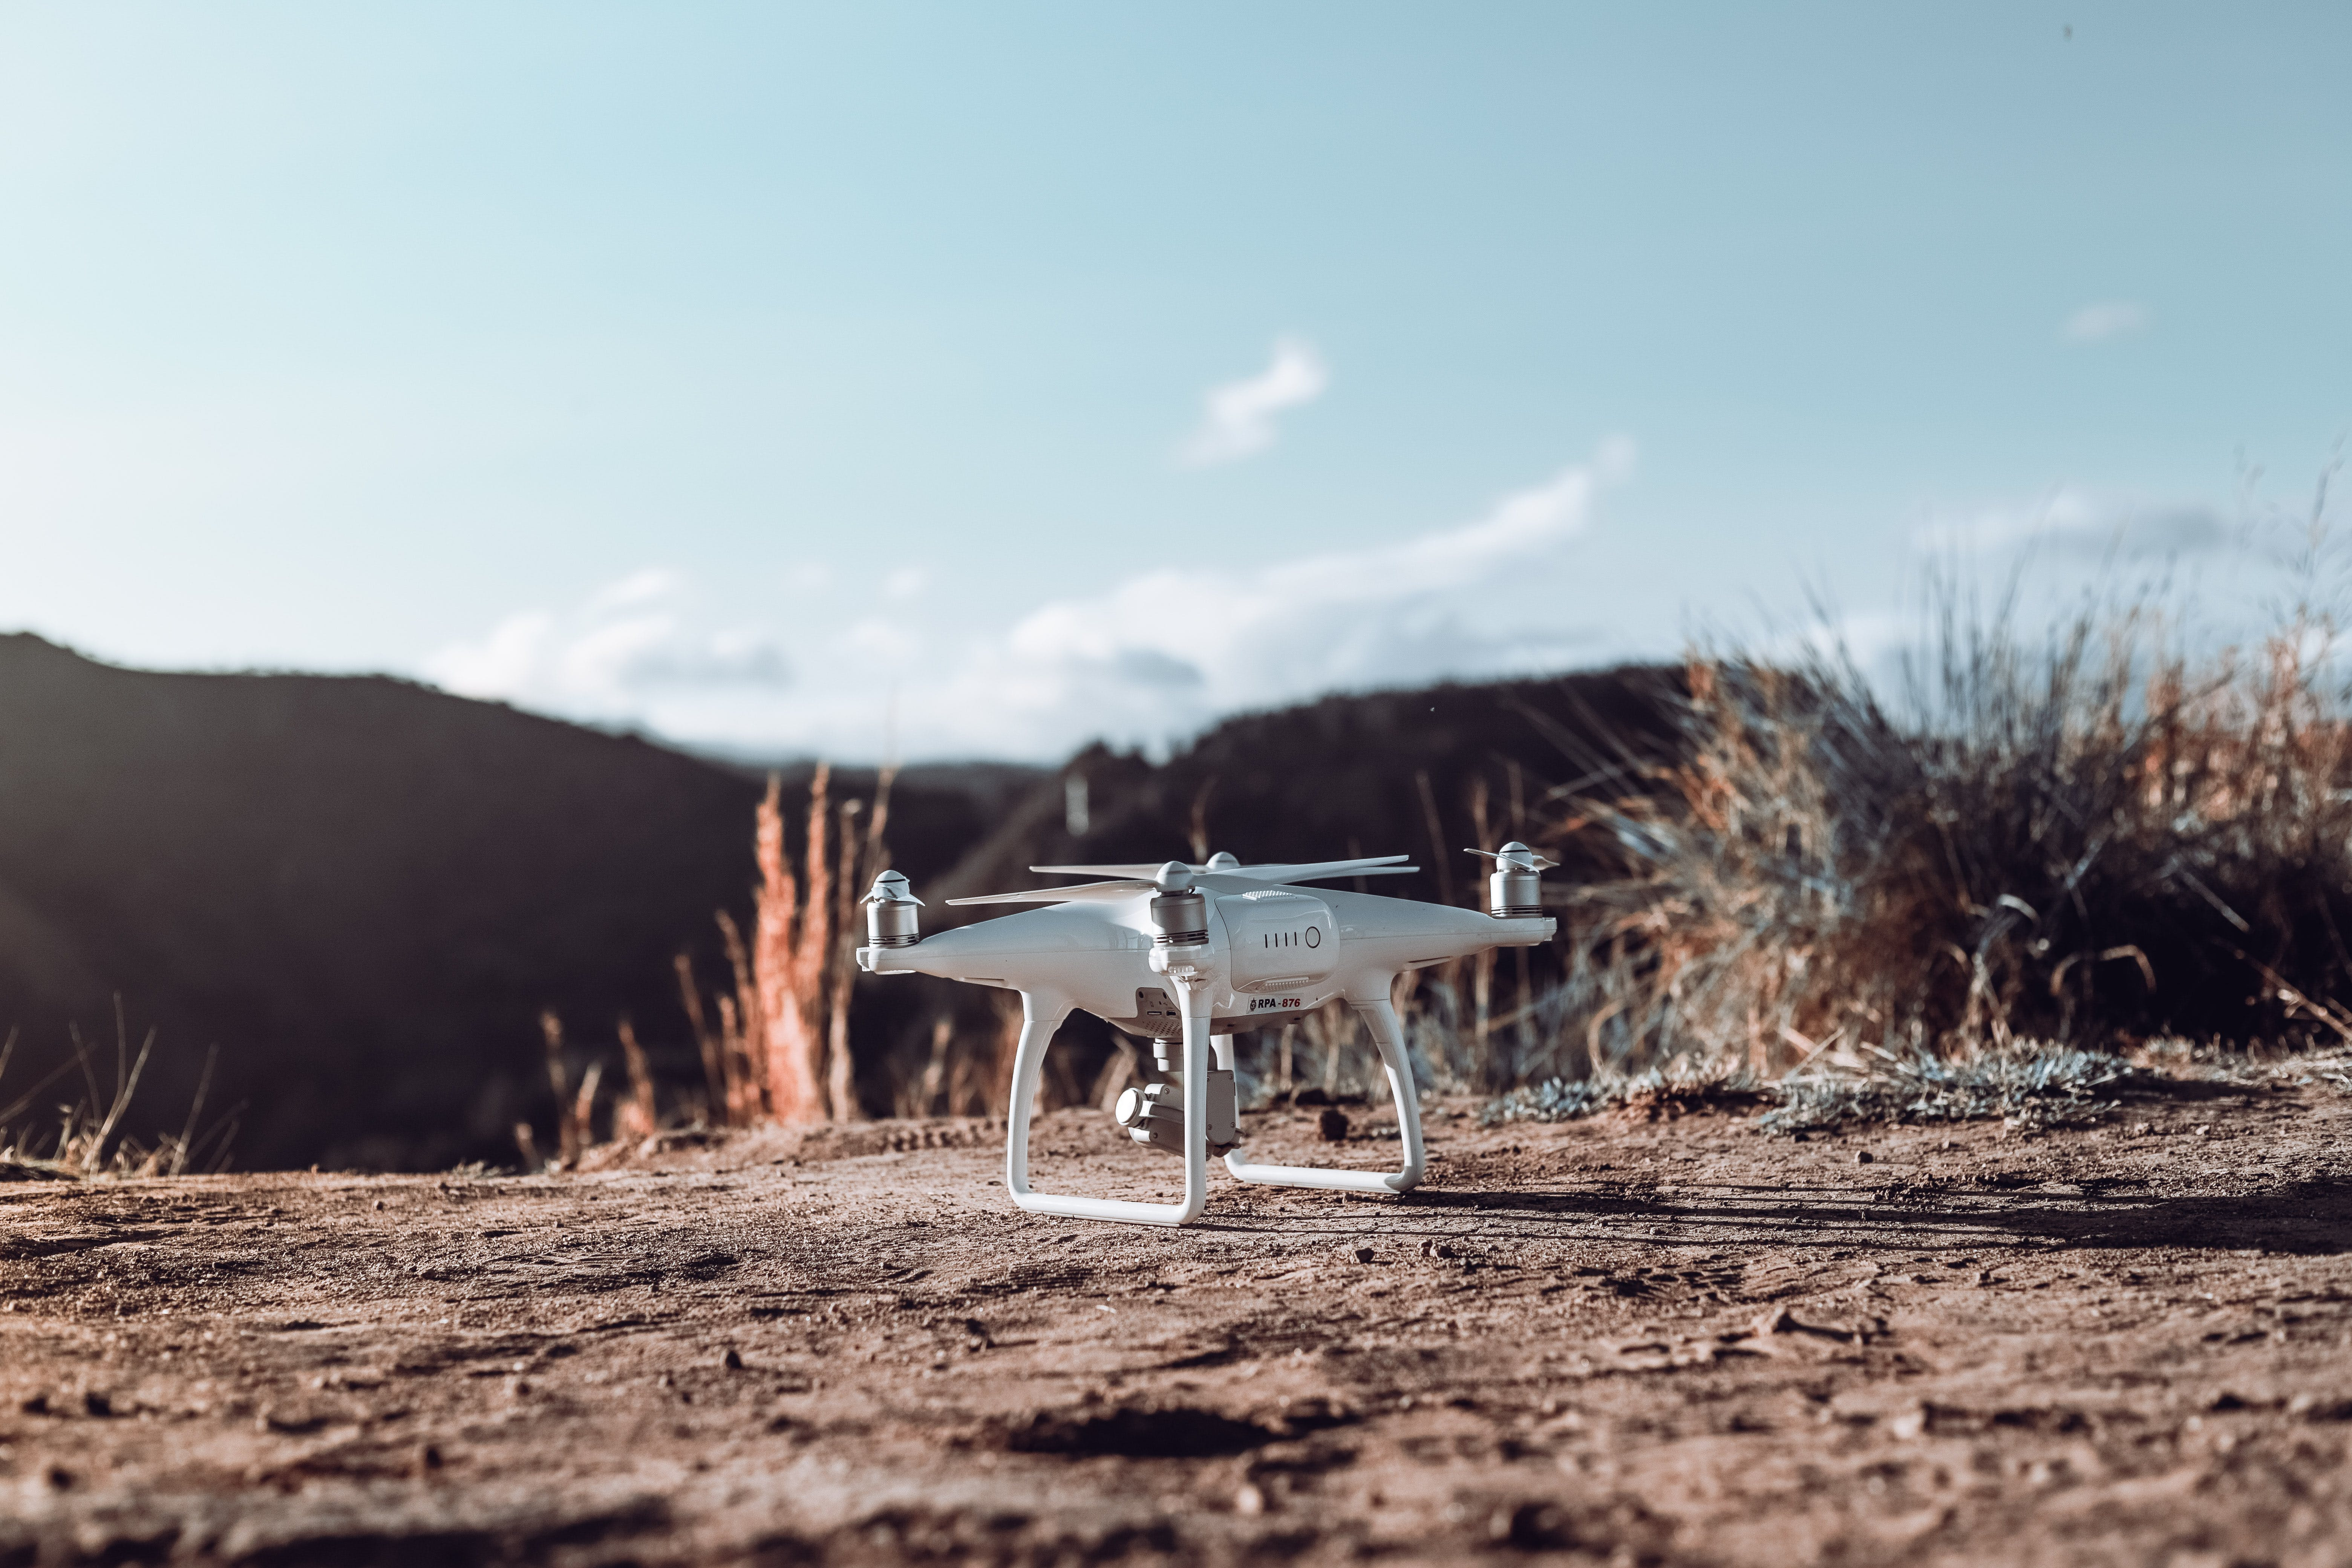 Close-Up Photo of Drone